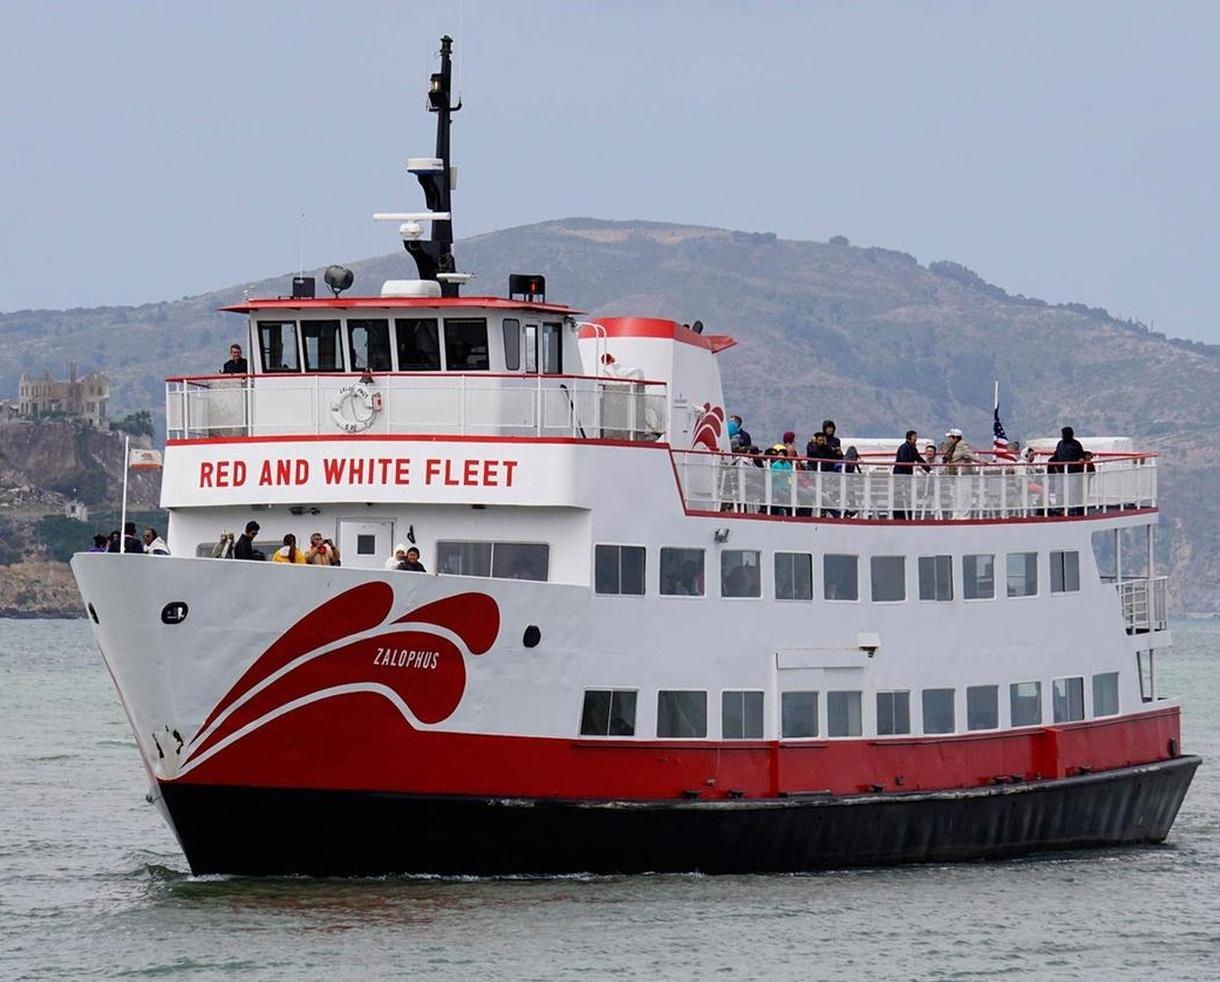 Golden Gate Bay or Bridge 2 Bridge Cruise for One Adult or Youth from Red and White Fleet